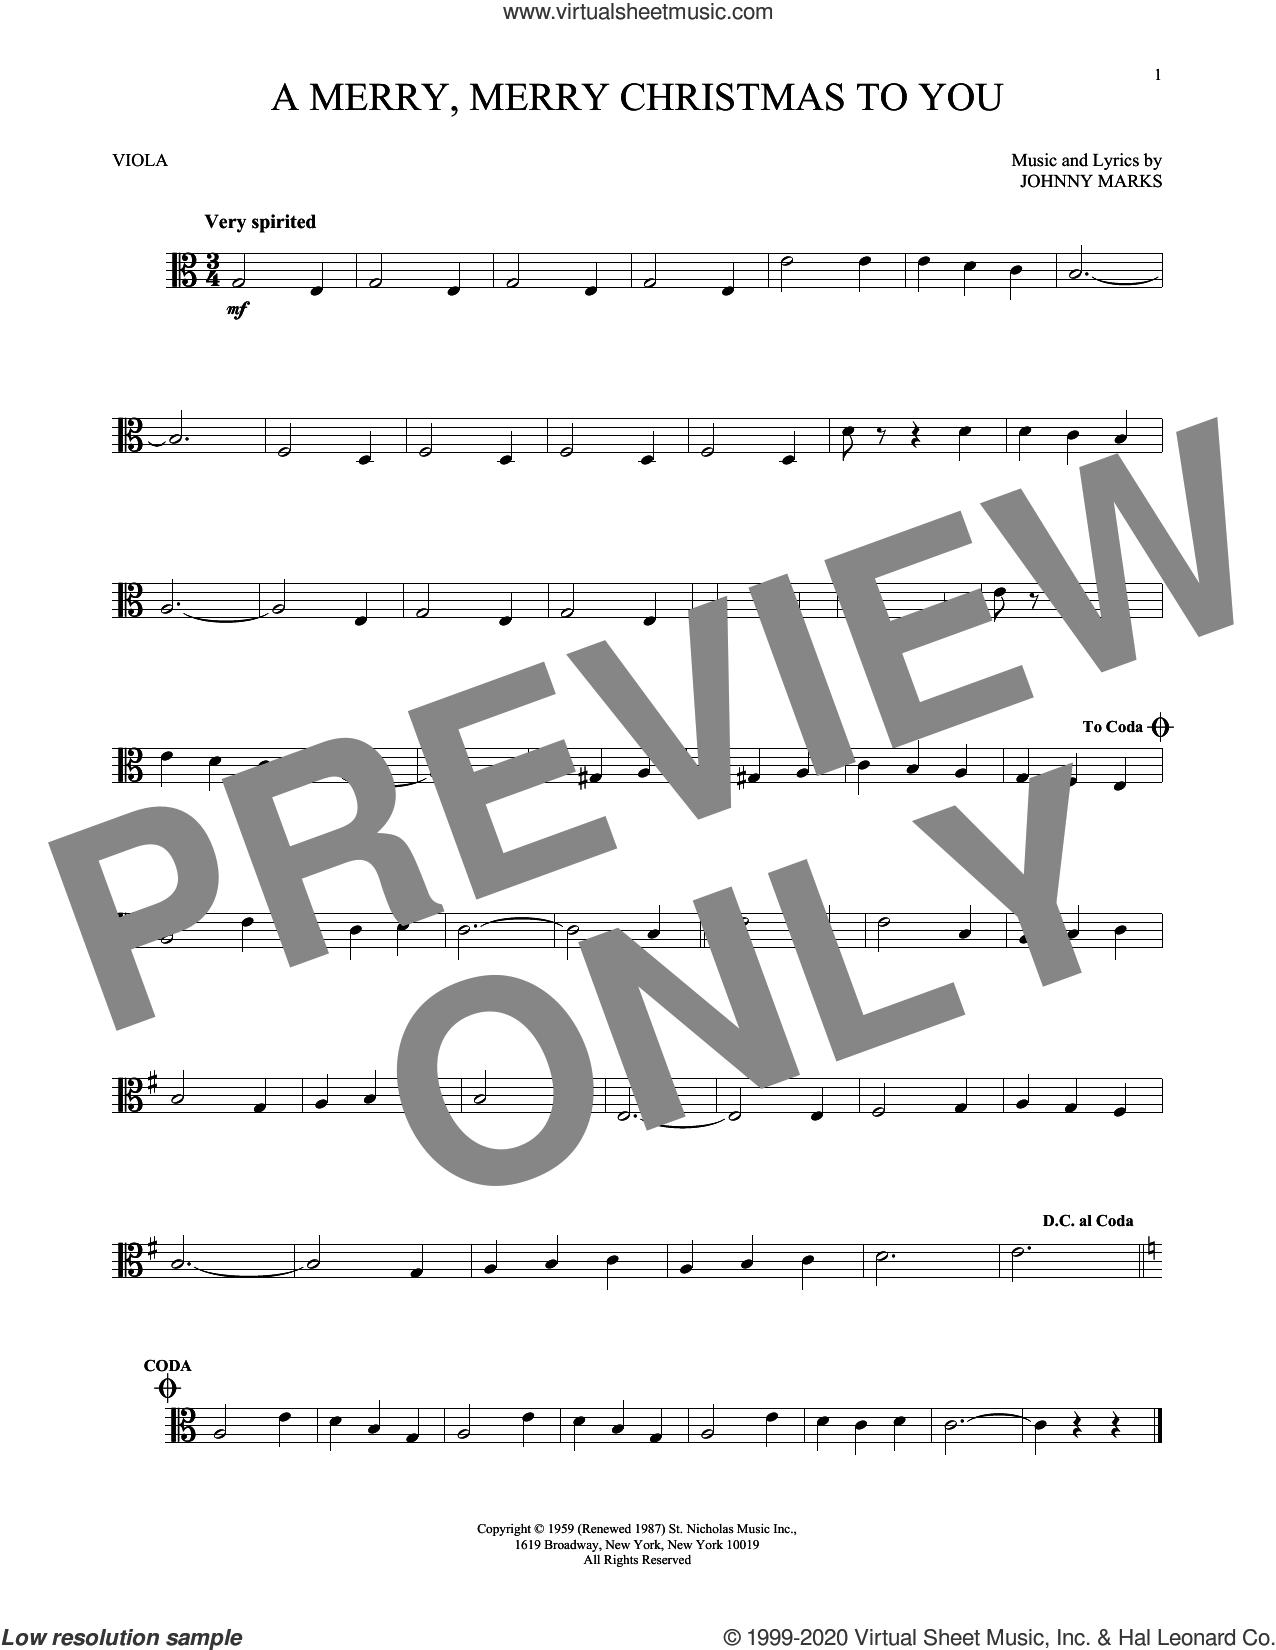 A Merry, Merry Christmas To You sheet music for viola solo by Johnny Marks, intermediate skill level